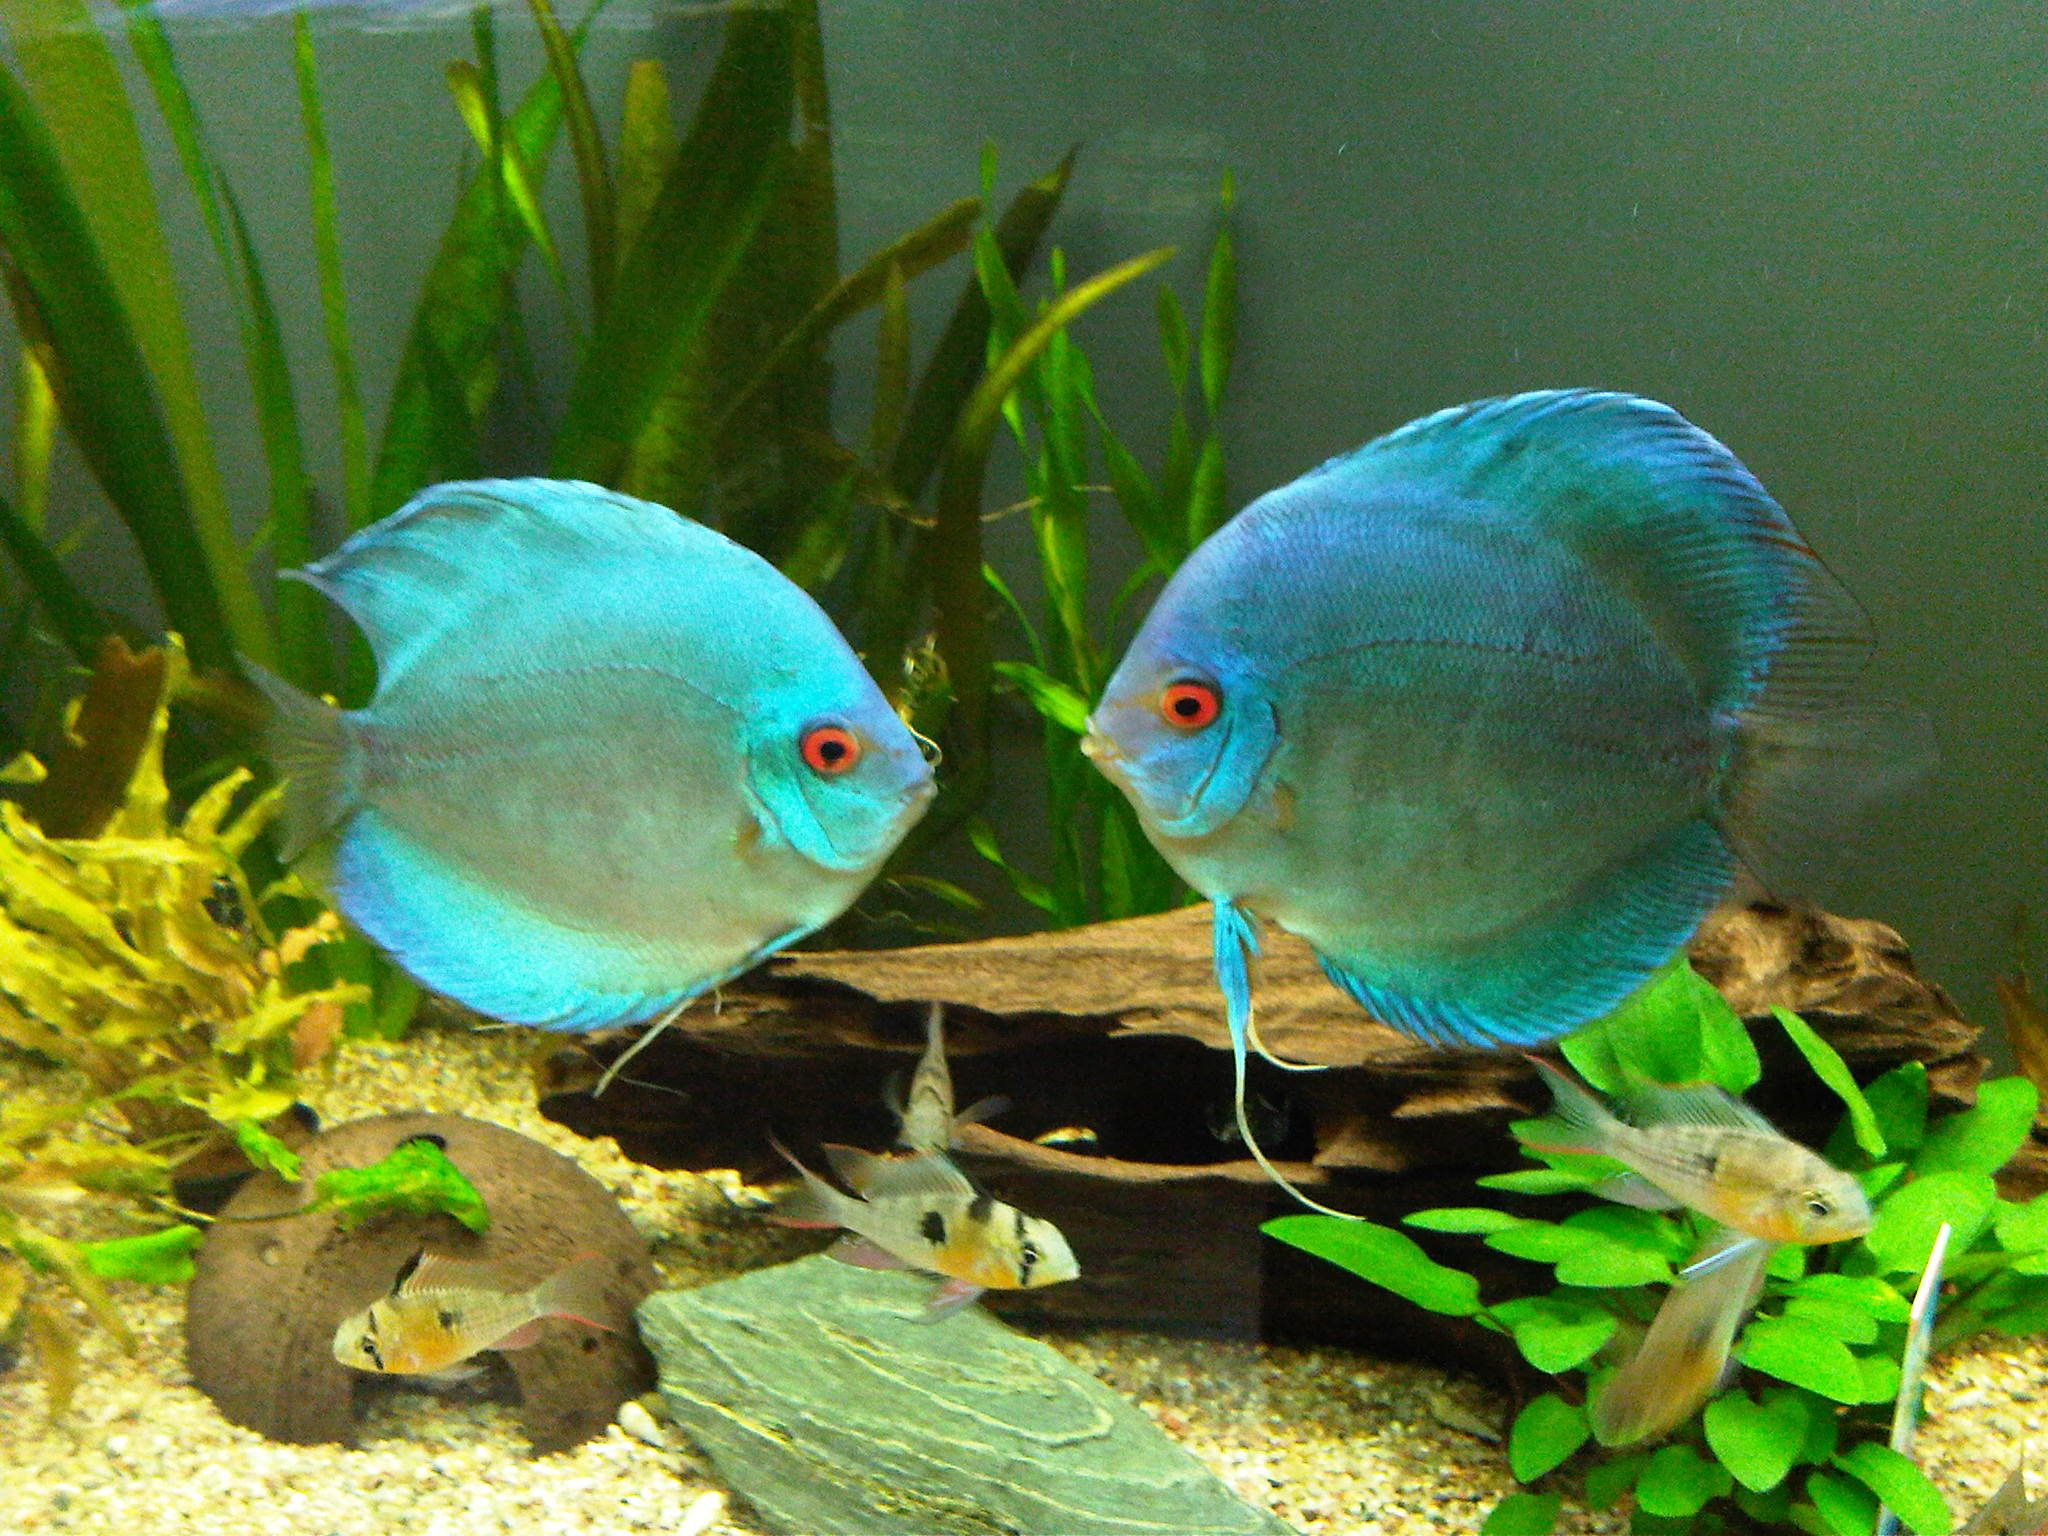 Freshwater Fish Freshwater Fish Freshwater Aquariums Equipment Copyright 2010 By Discus Fish Aquarium Fish Fish